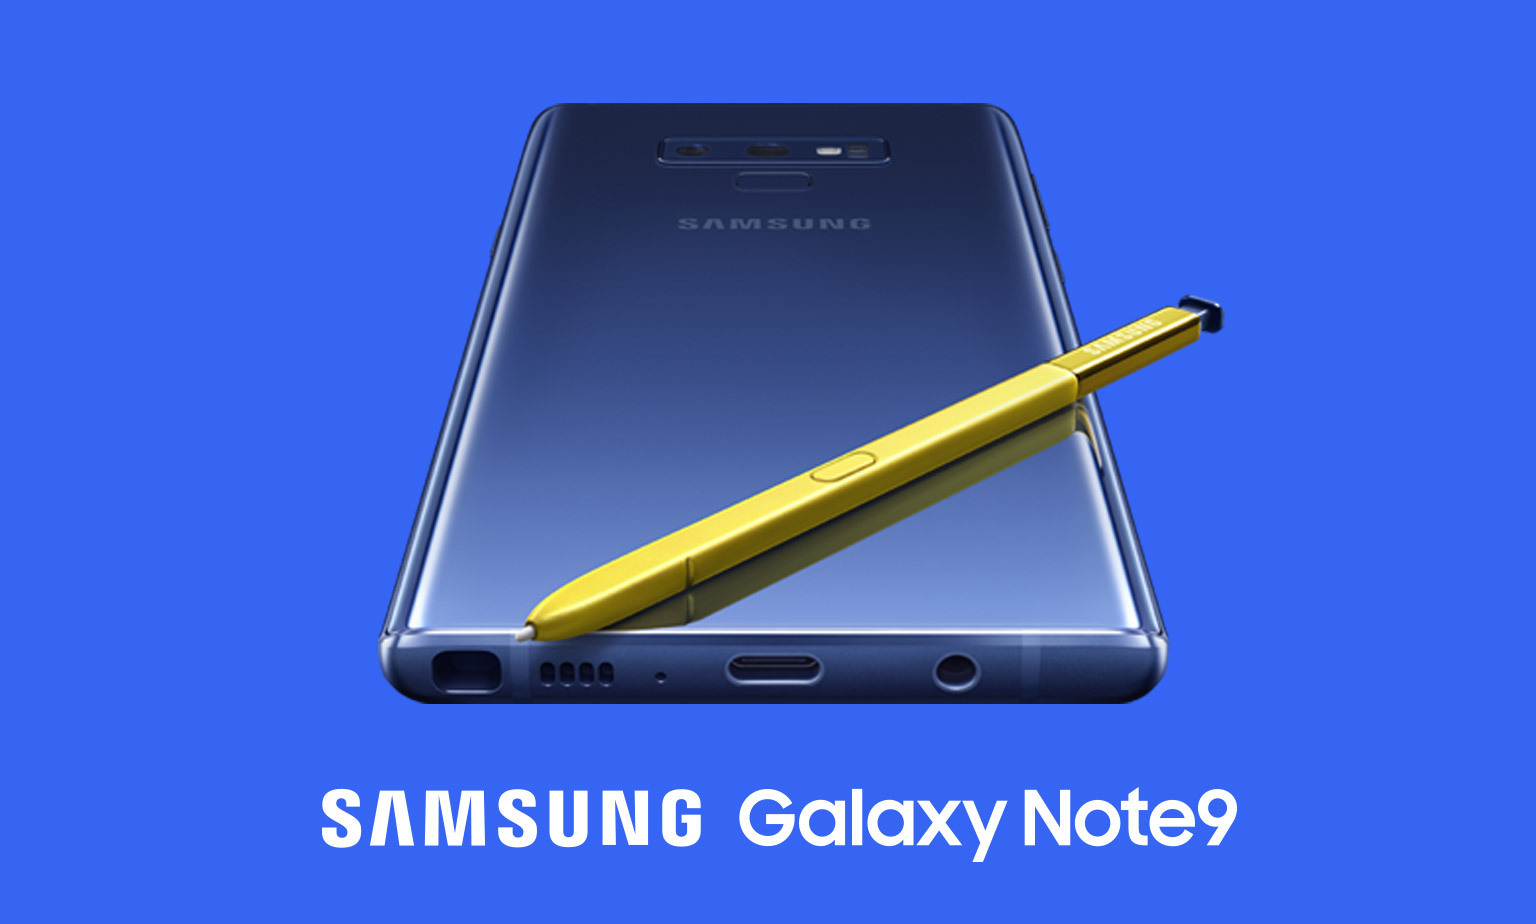 The new Samsung Galaxy Note 9 has arrived